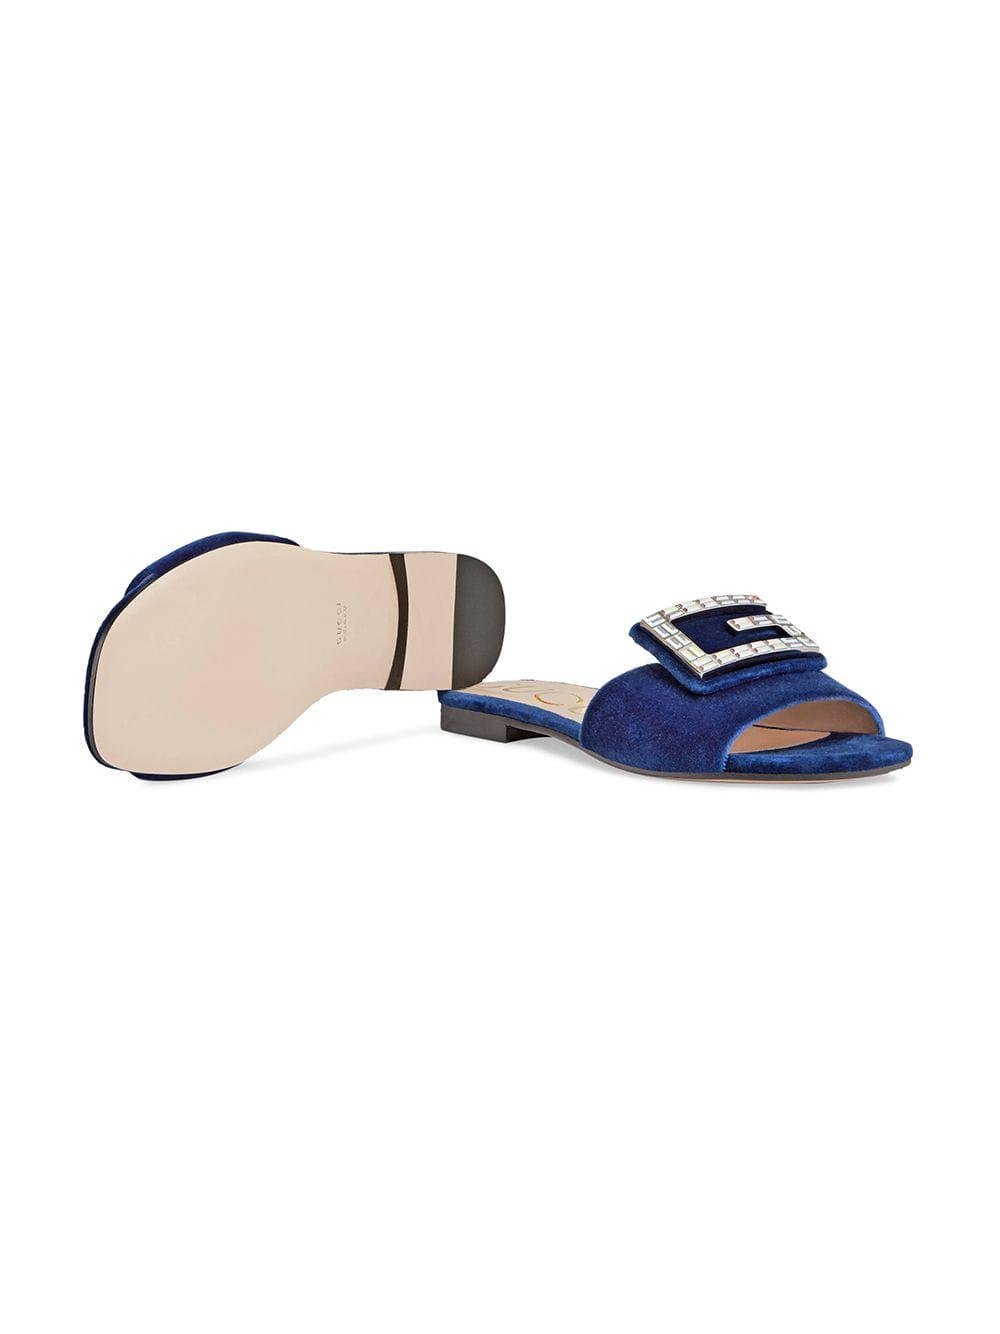 9a79d3e3b Gucci - Blue Velvet Slides With Crystal G - Lyst. View fullscreen